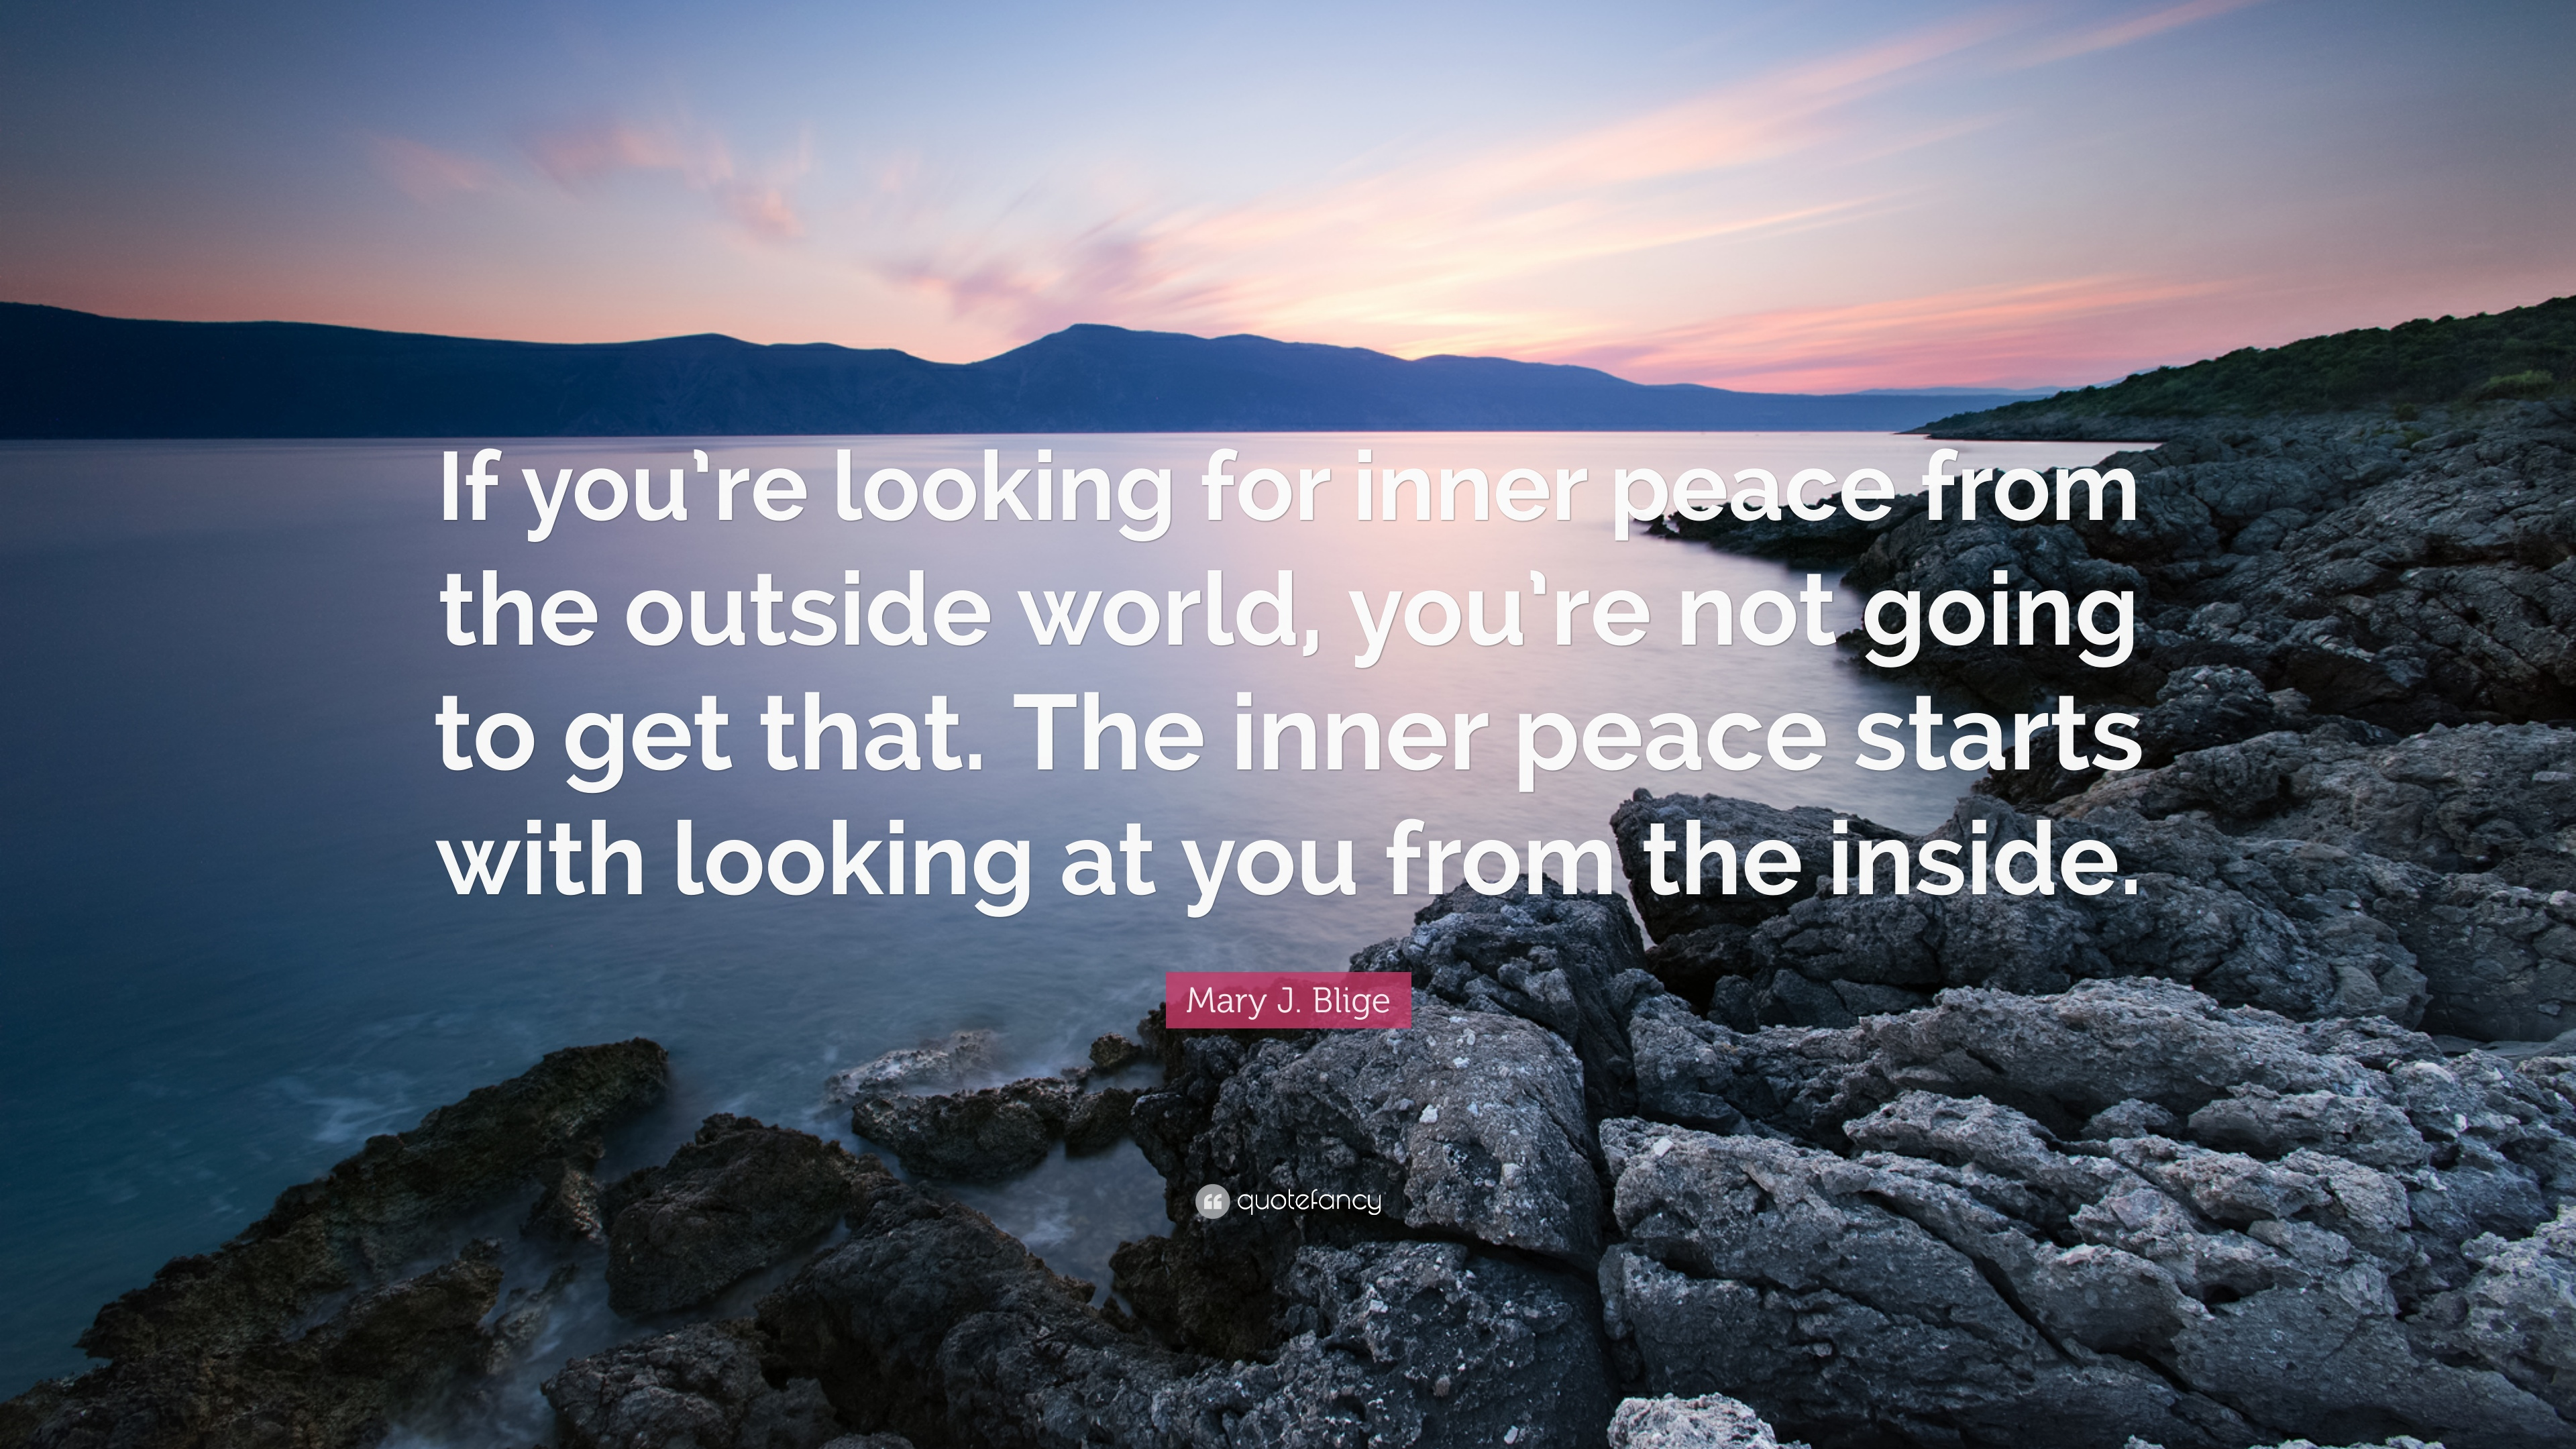 5 Reasons Why Inner Peace Is Important